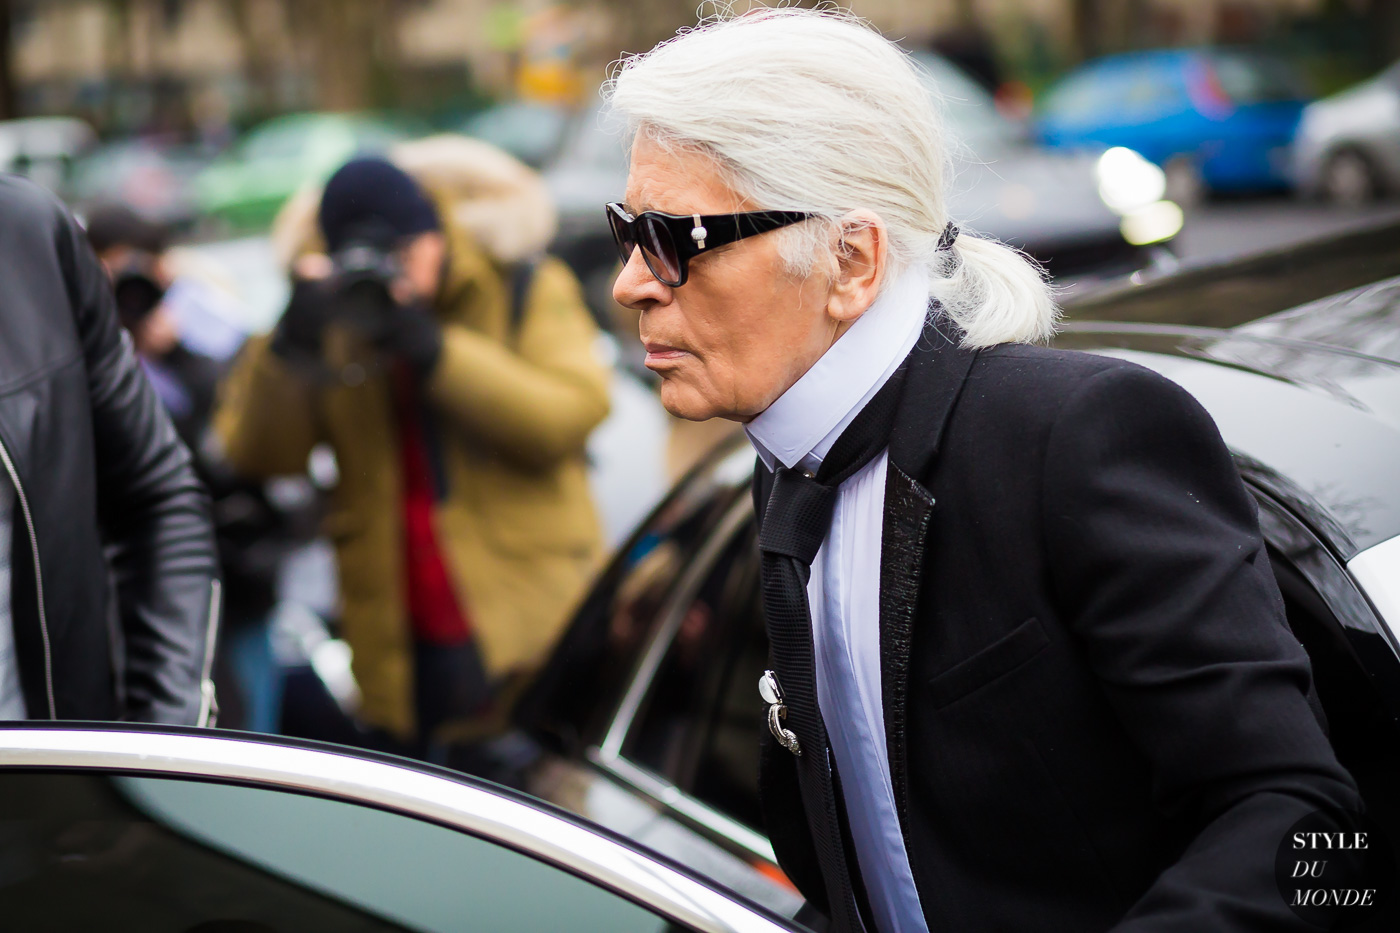 Karl Lagerfeld Street Style Street Fashion Streetsnaps by STYLEDUMONDE Street Style Fashion Photography